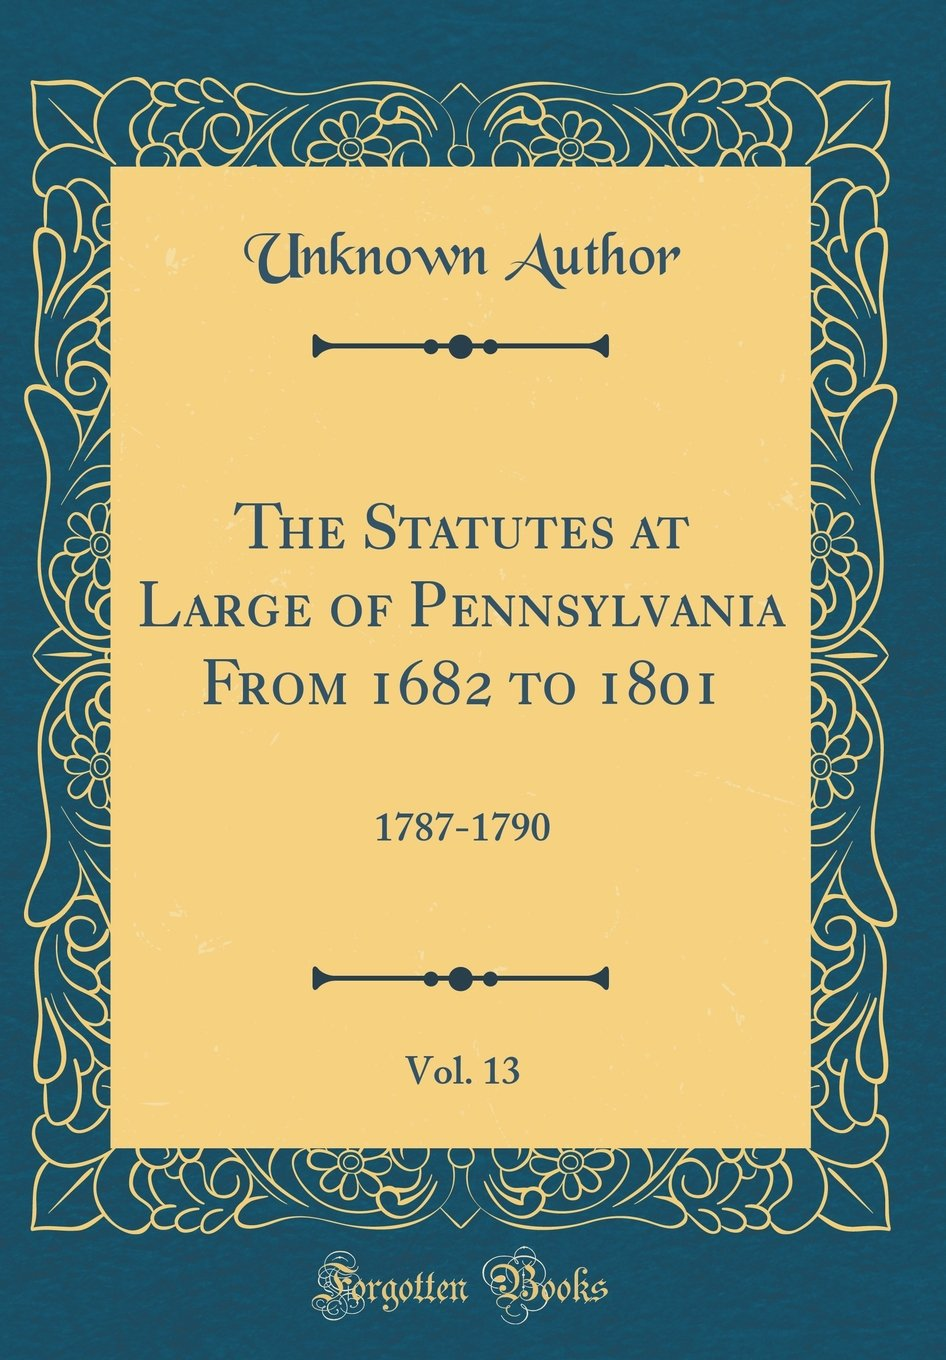 The Statutes at Large of Pennsylvania From 1682 to 1801, Vol. 13: 1787-1790 (Classic Reprint) ebook